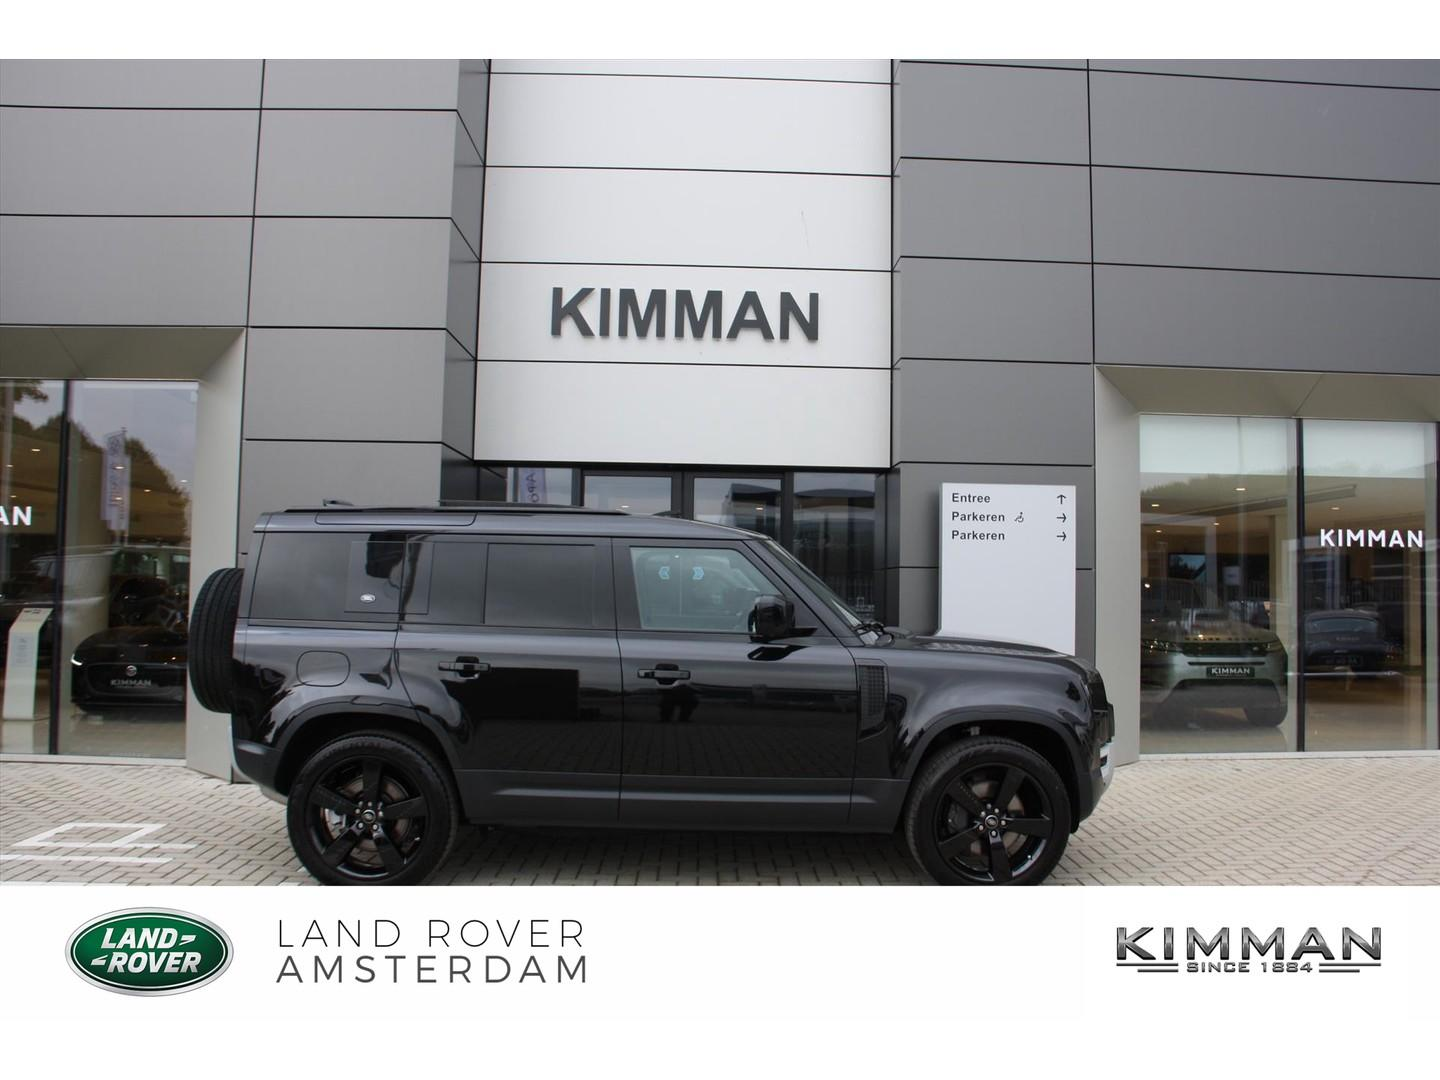 Land rover Defender 110 d240 * 7 zits * €14.000 voordeel!!! se black pack awd